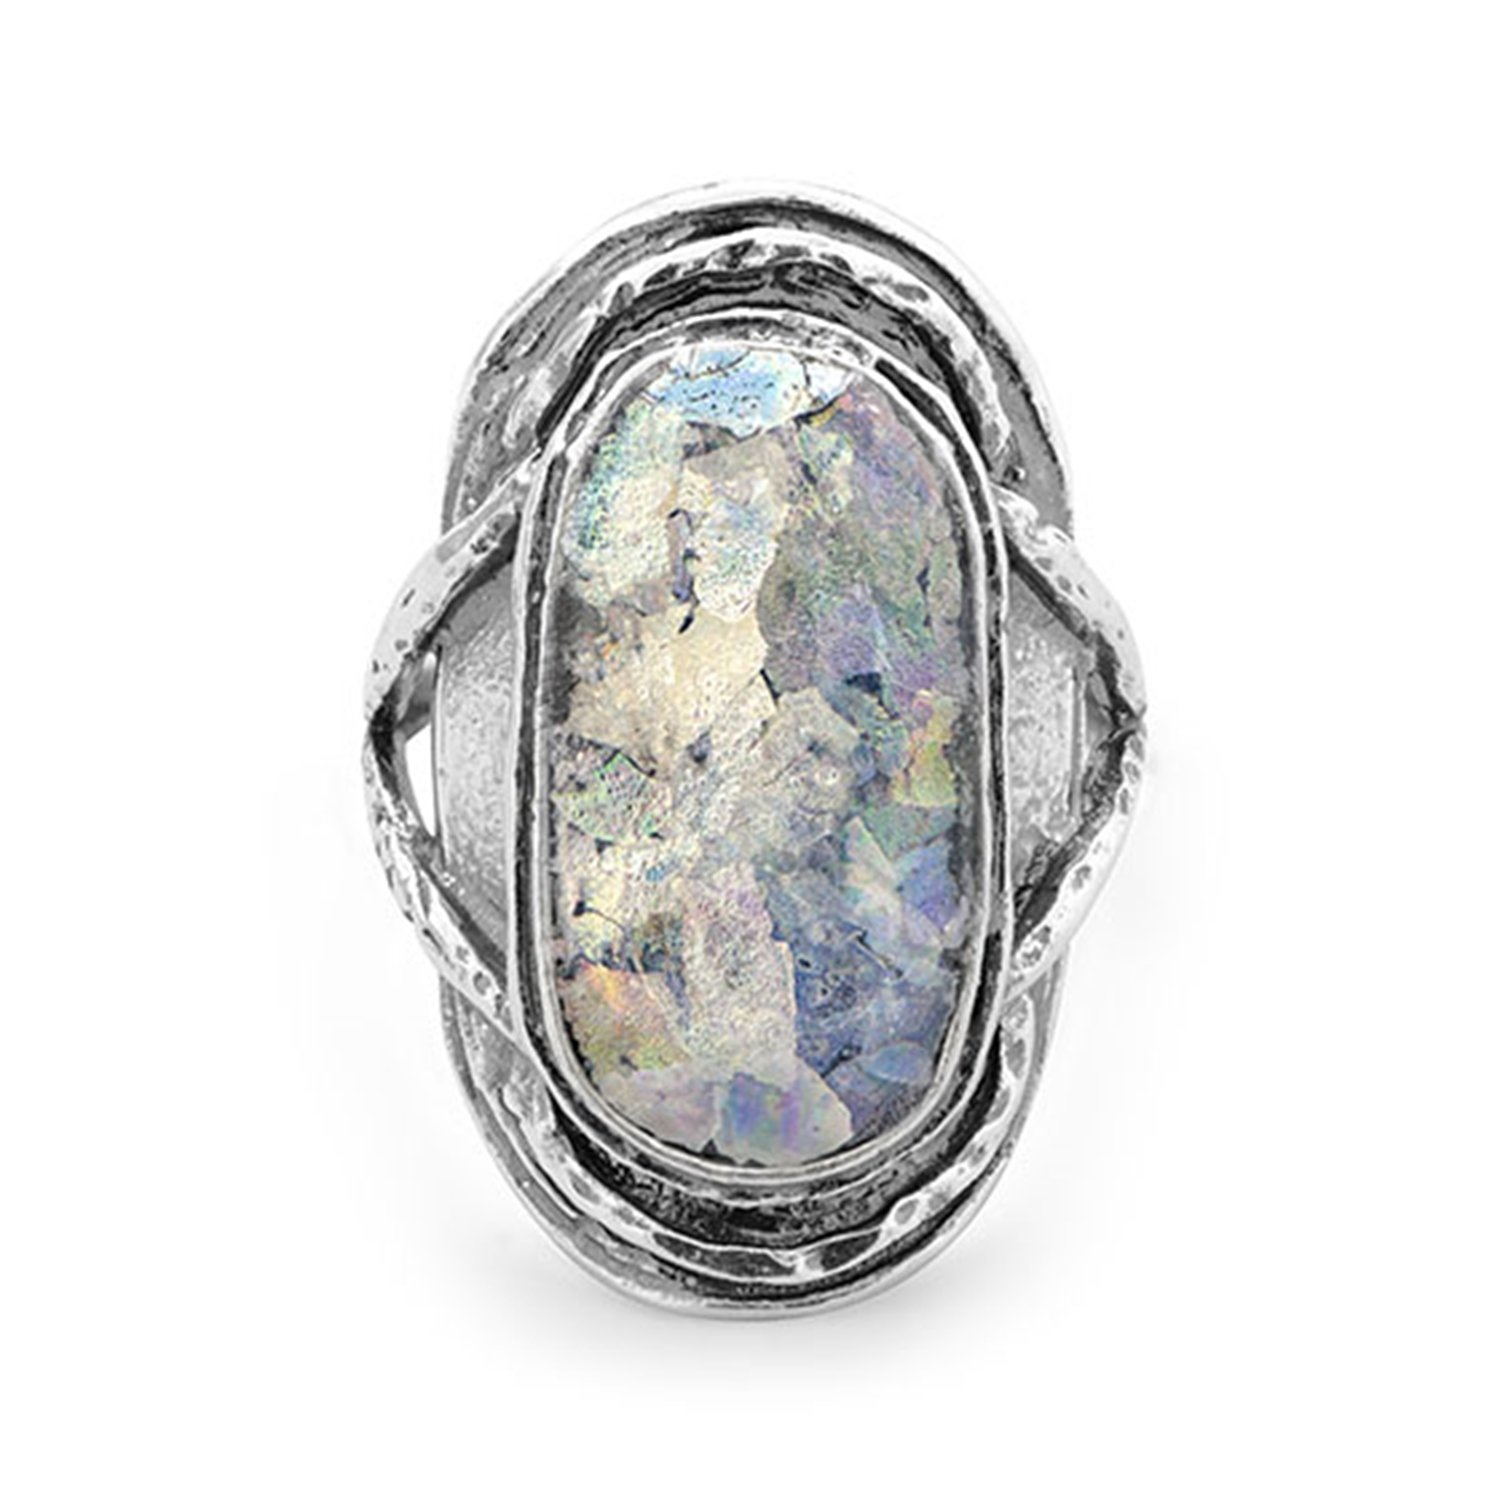 Ancient Roman Glass Ring Oval Shape Antiqued Sterling Silver, 8 by AzureBella Jewelry